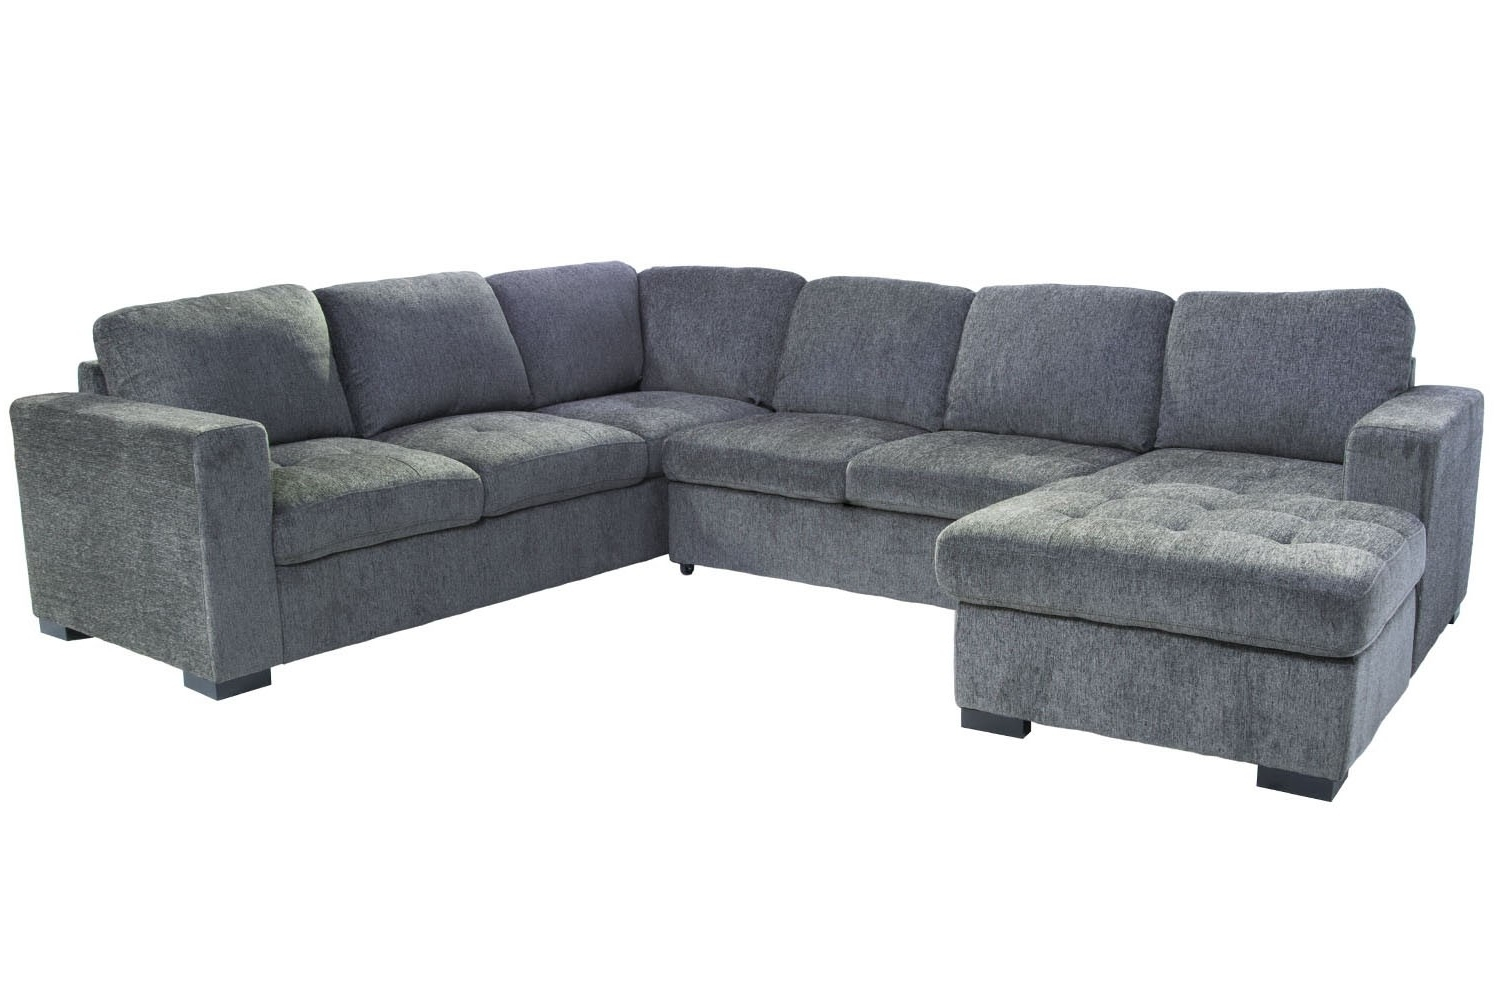 Gray Sectionals With Chaise Intended For Well Known Sectional Sofas (View 15 of 15)